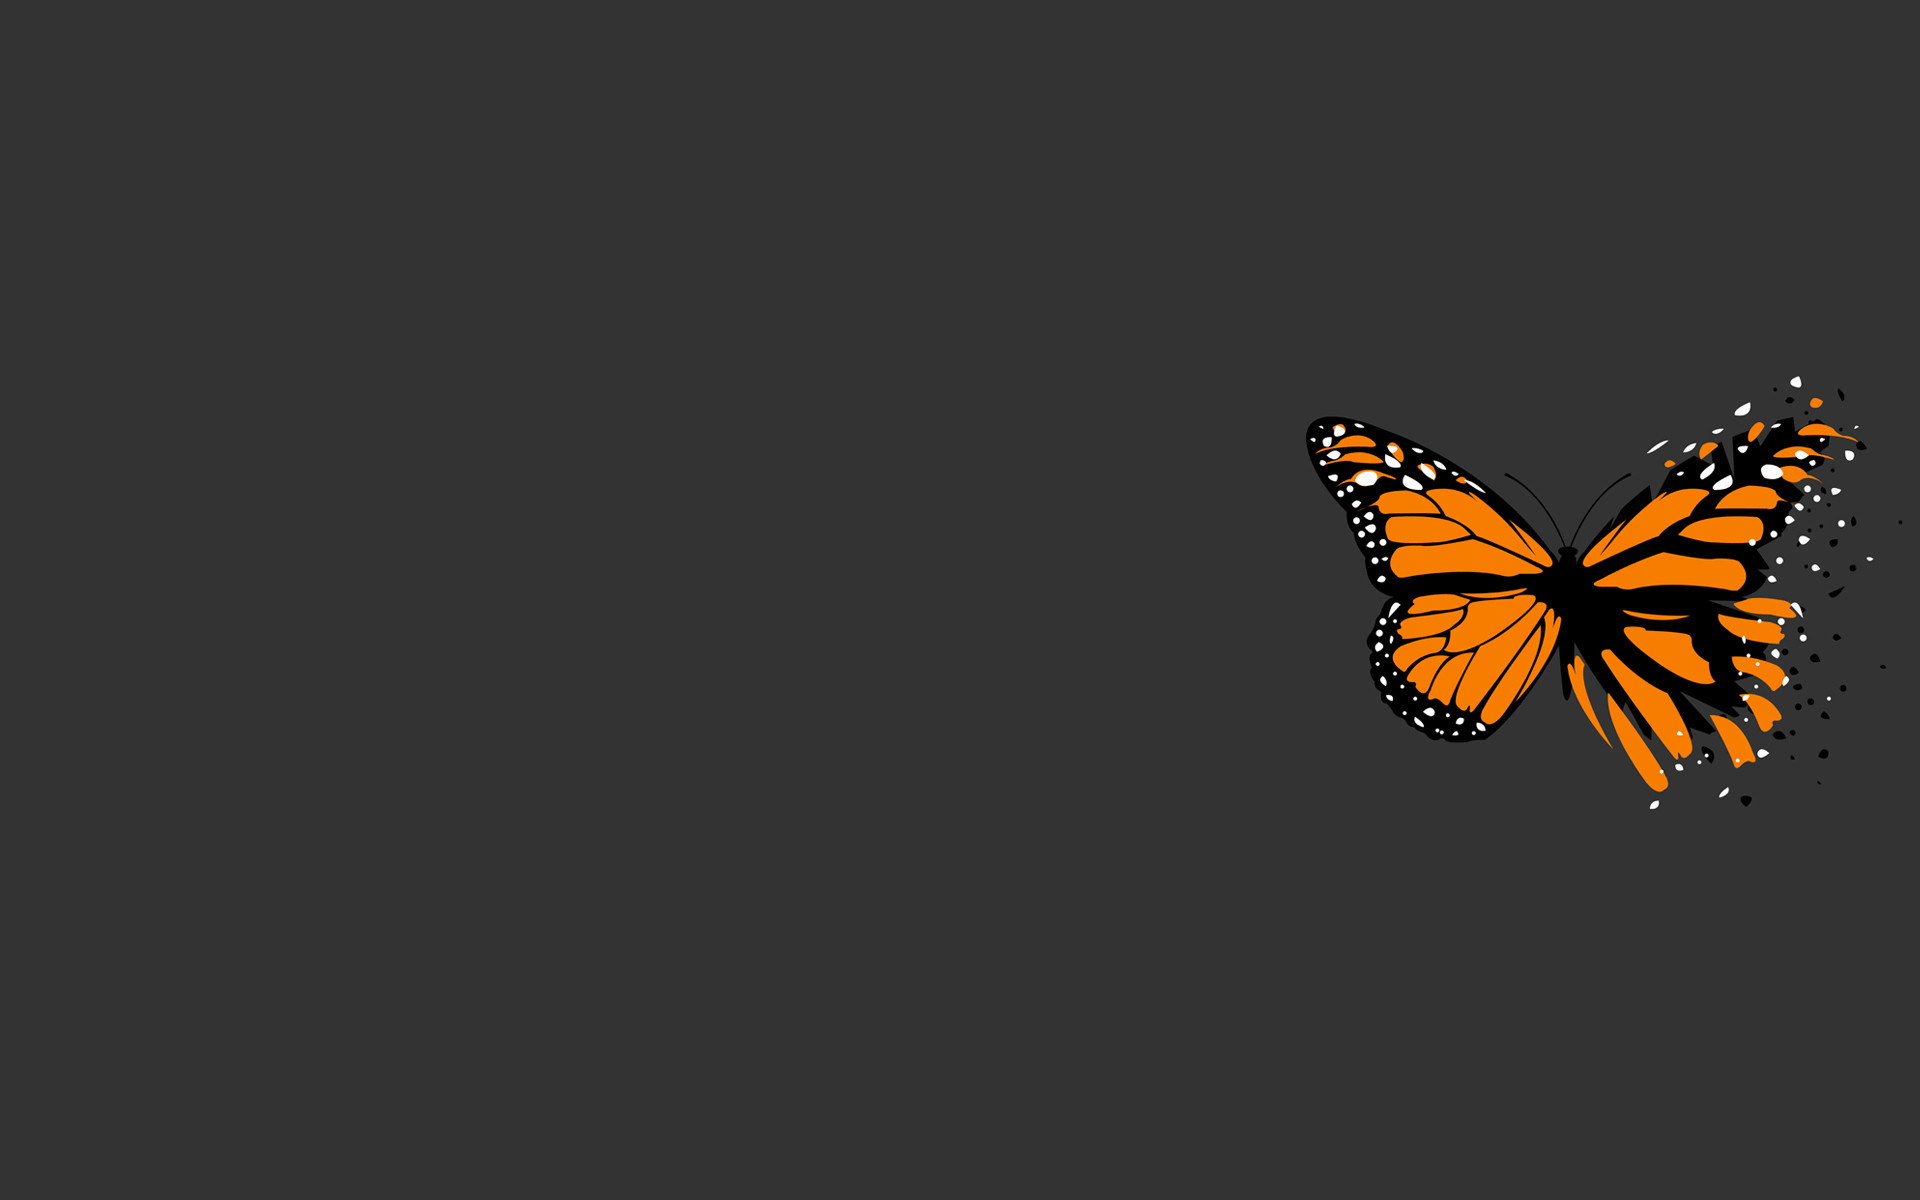 Black Butterfly Background Wallpaper (68+ images)